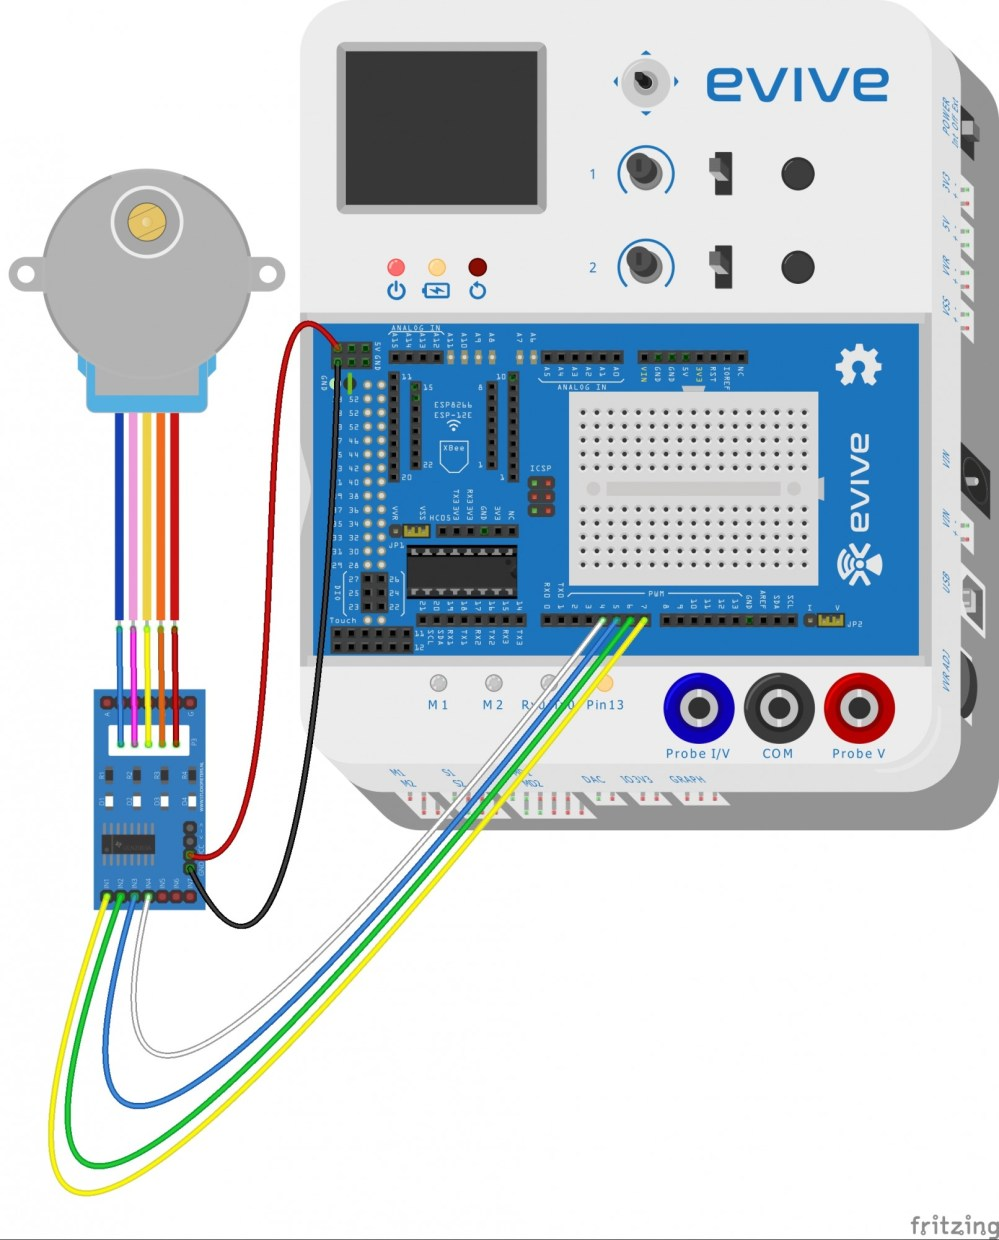 medium resolution of connect 28 byj48 stepper motor 5 wire female bus with uln2003 stepper motor driver male bus as shown in figure